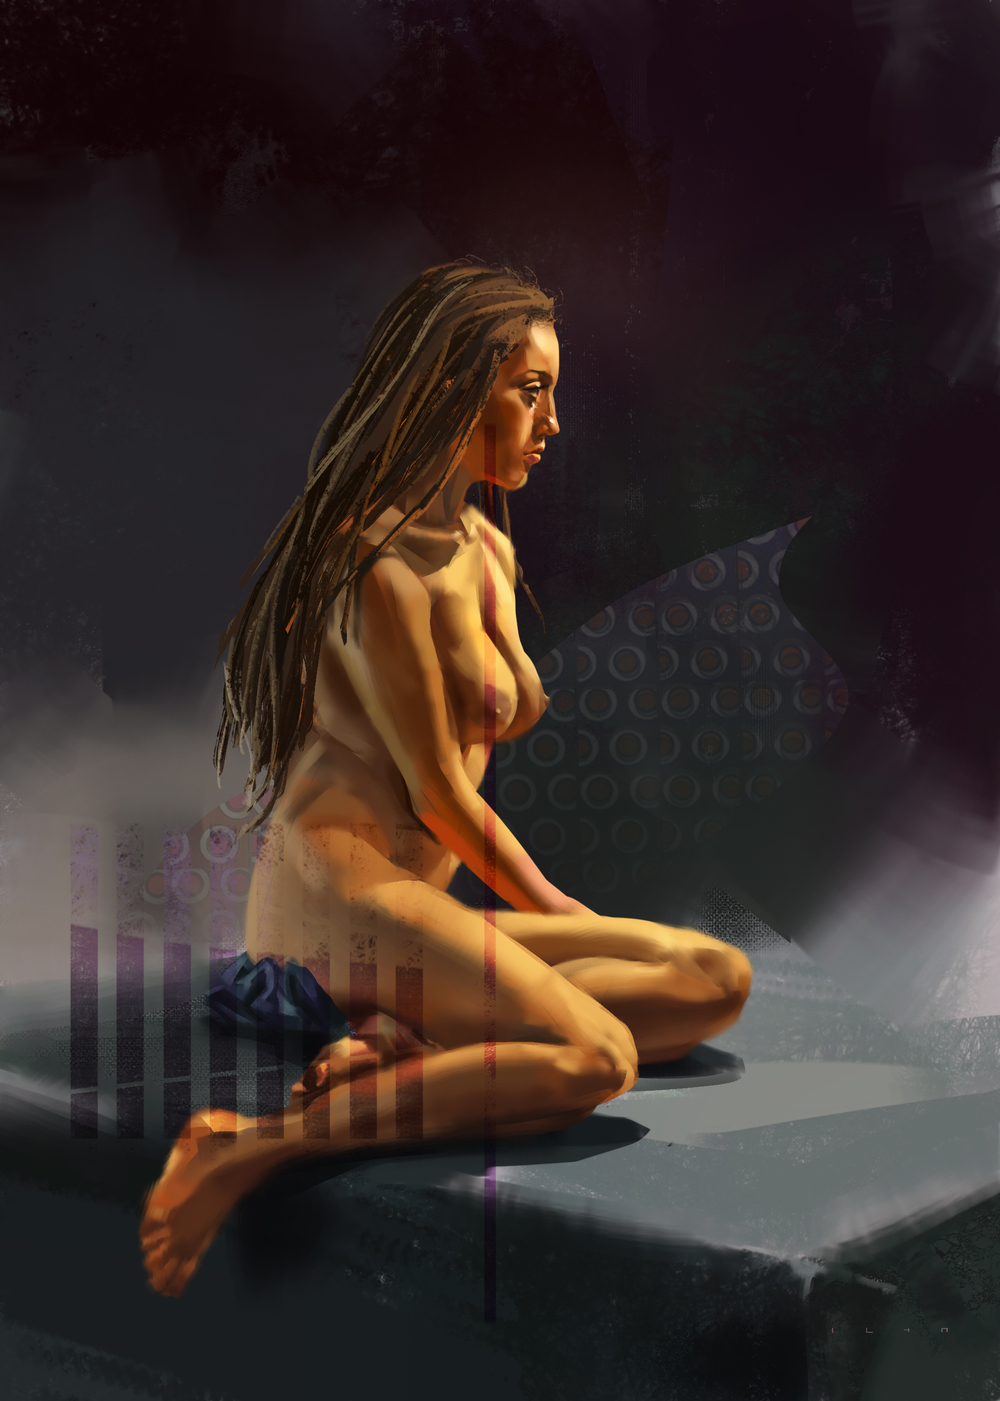 LifeDrawing_Dec2014.jpg